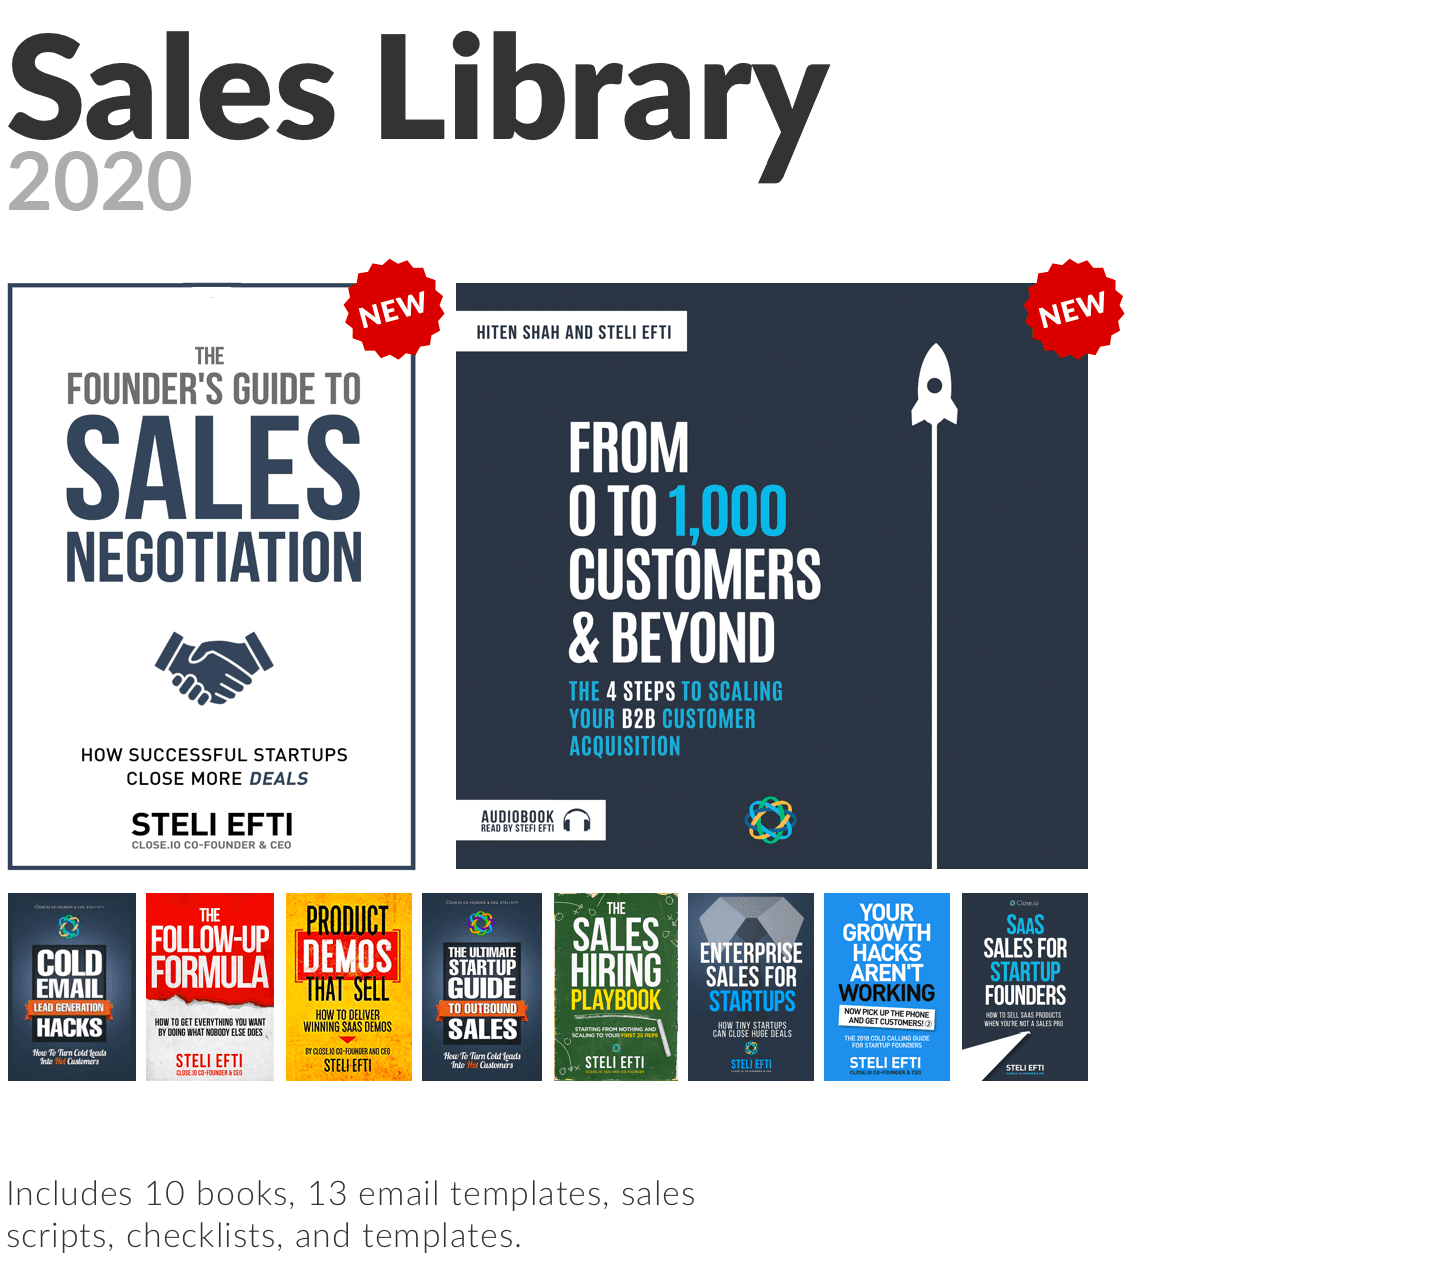 Sales-Library 2020